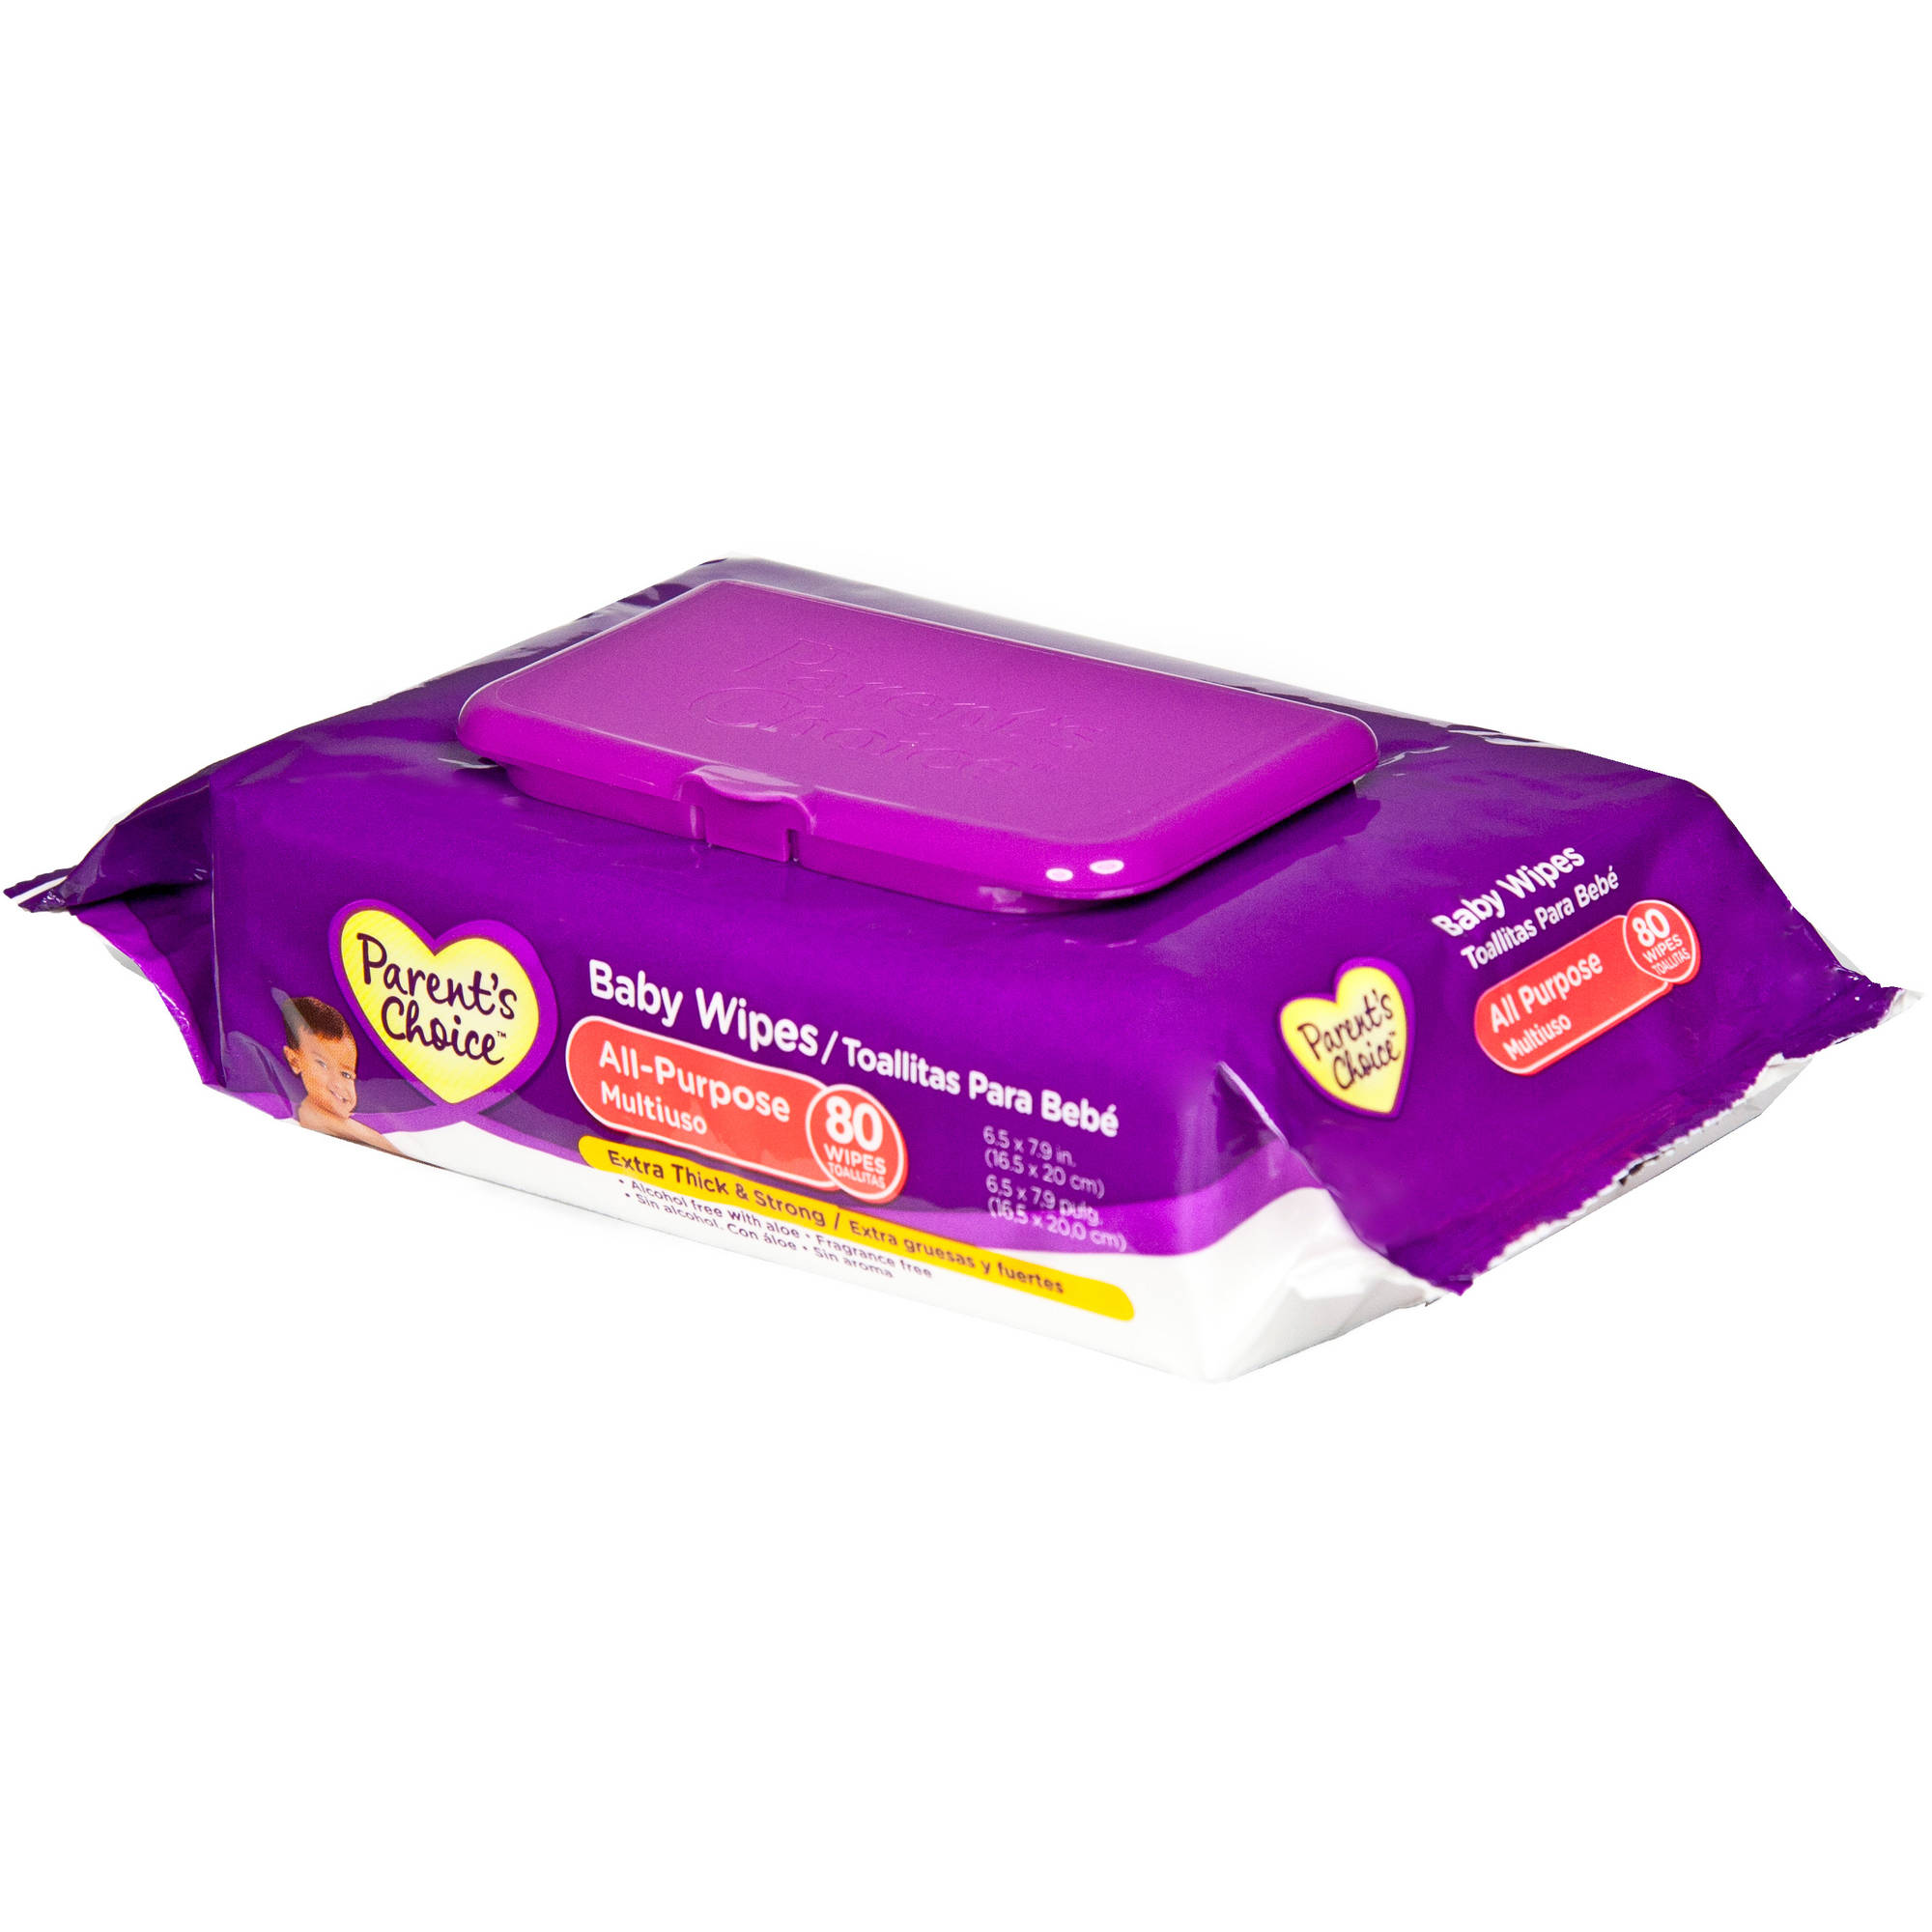 Parent's Choice Flip-Top All Purpose Wipes, 80 sheets